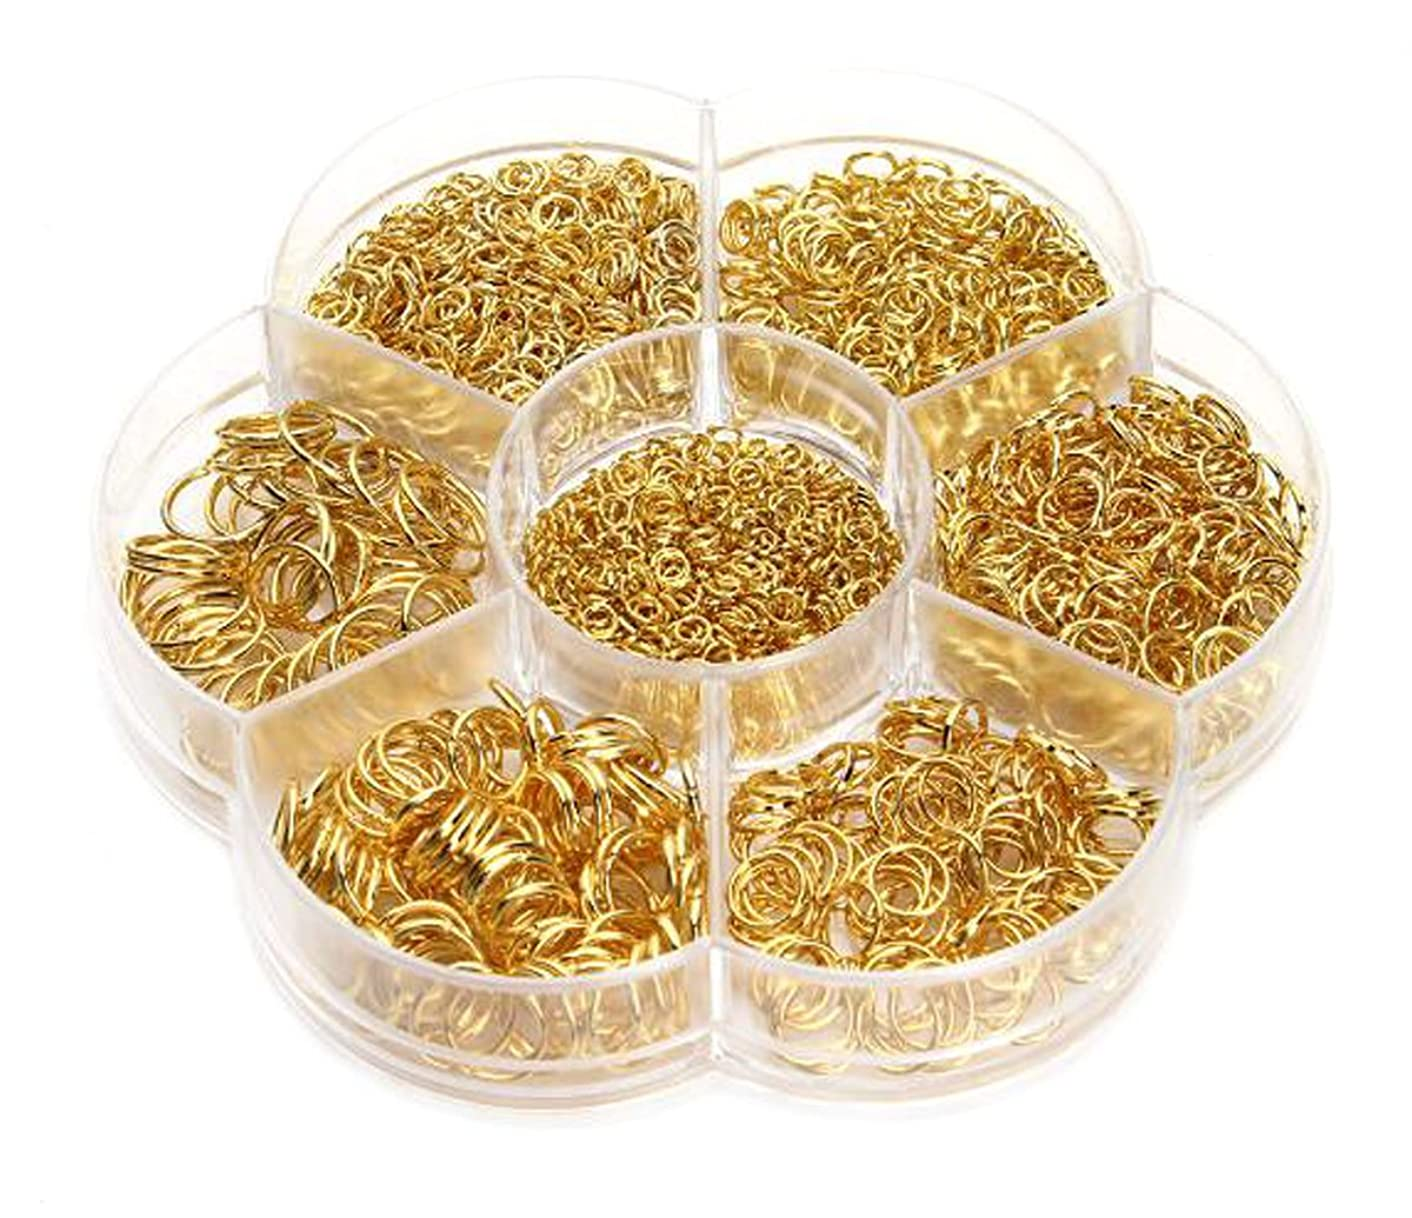 1450 Pcs Golden Open Circle Jump Rings - 1 Box 3mm 4mm 5mm 6mm 7mm 8mm 10mm Metal Monocyclic Manual Connection Ring for DIY Handicraft Accessories fatyashb25677928